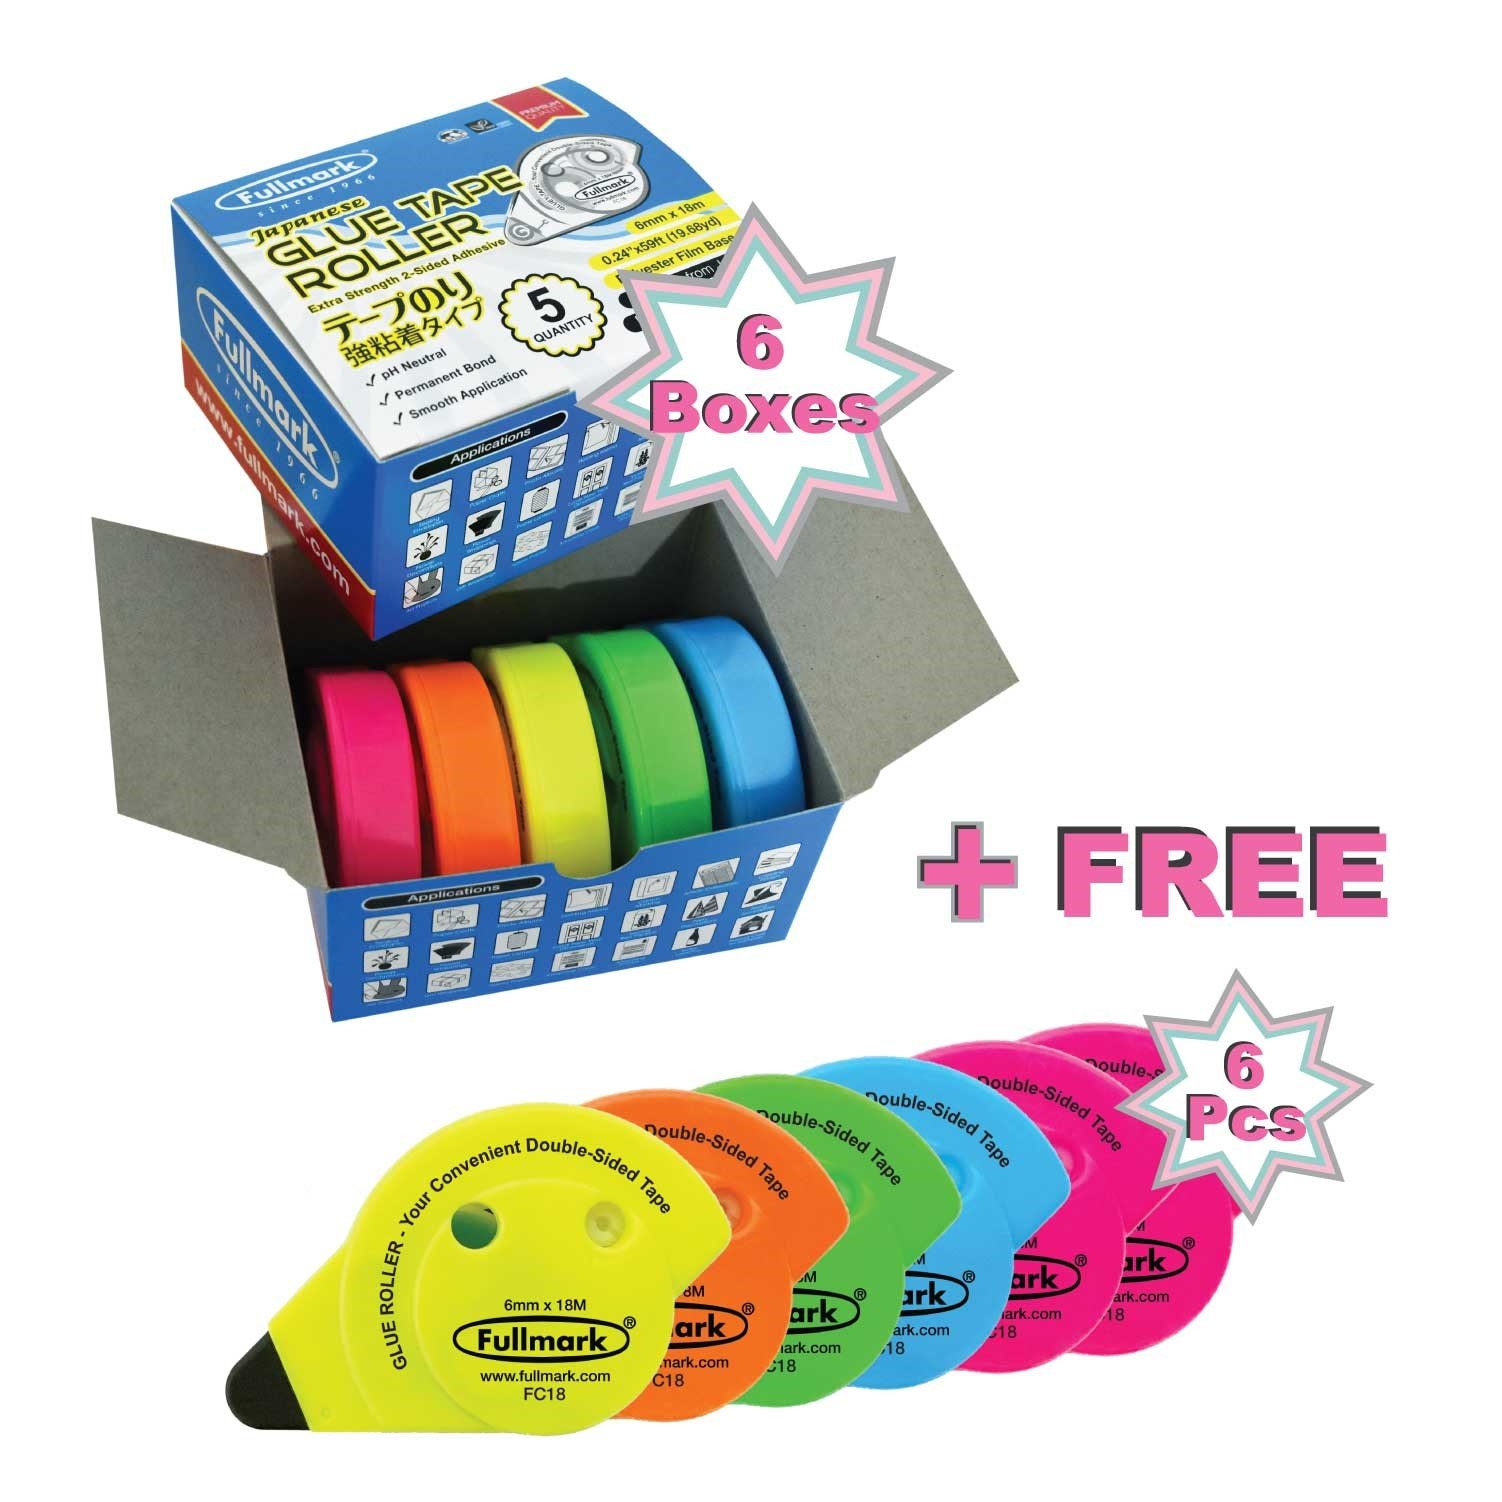 Fullmark 2018 Value Pack: Adhesive Roller Neon Assorted Colors, 30-Count + Free 6-Count Adhesive Rollers Assorted Colors Worth 41.94!